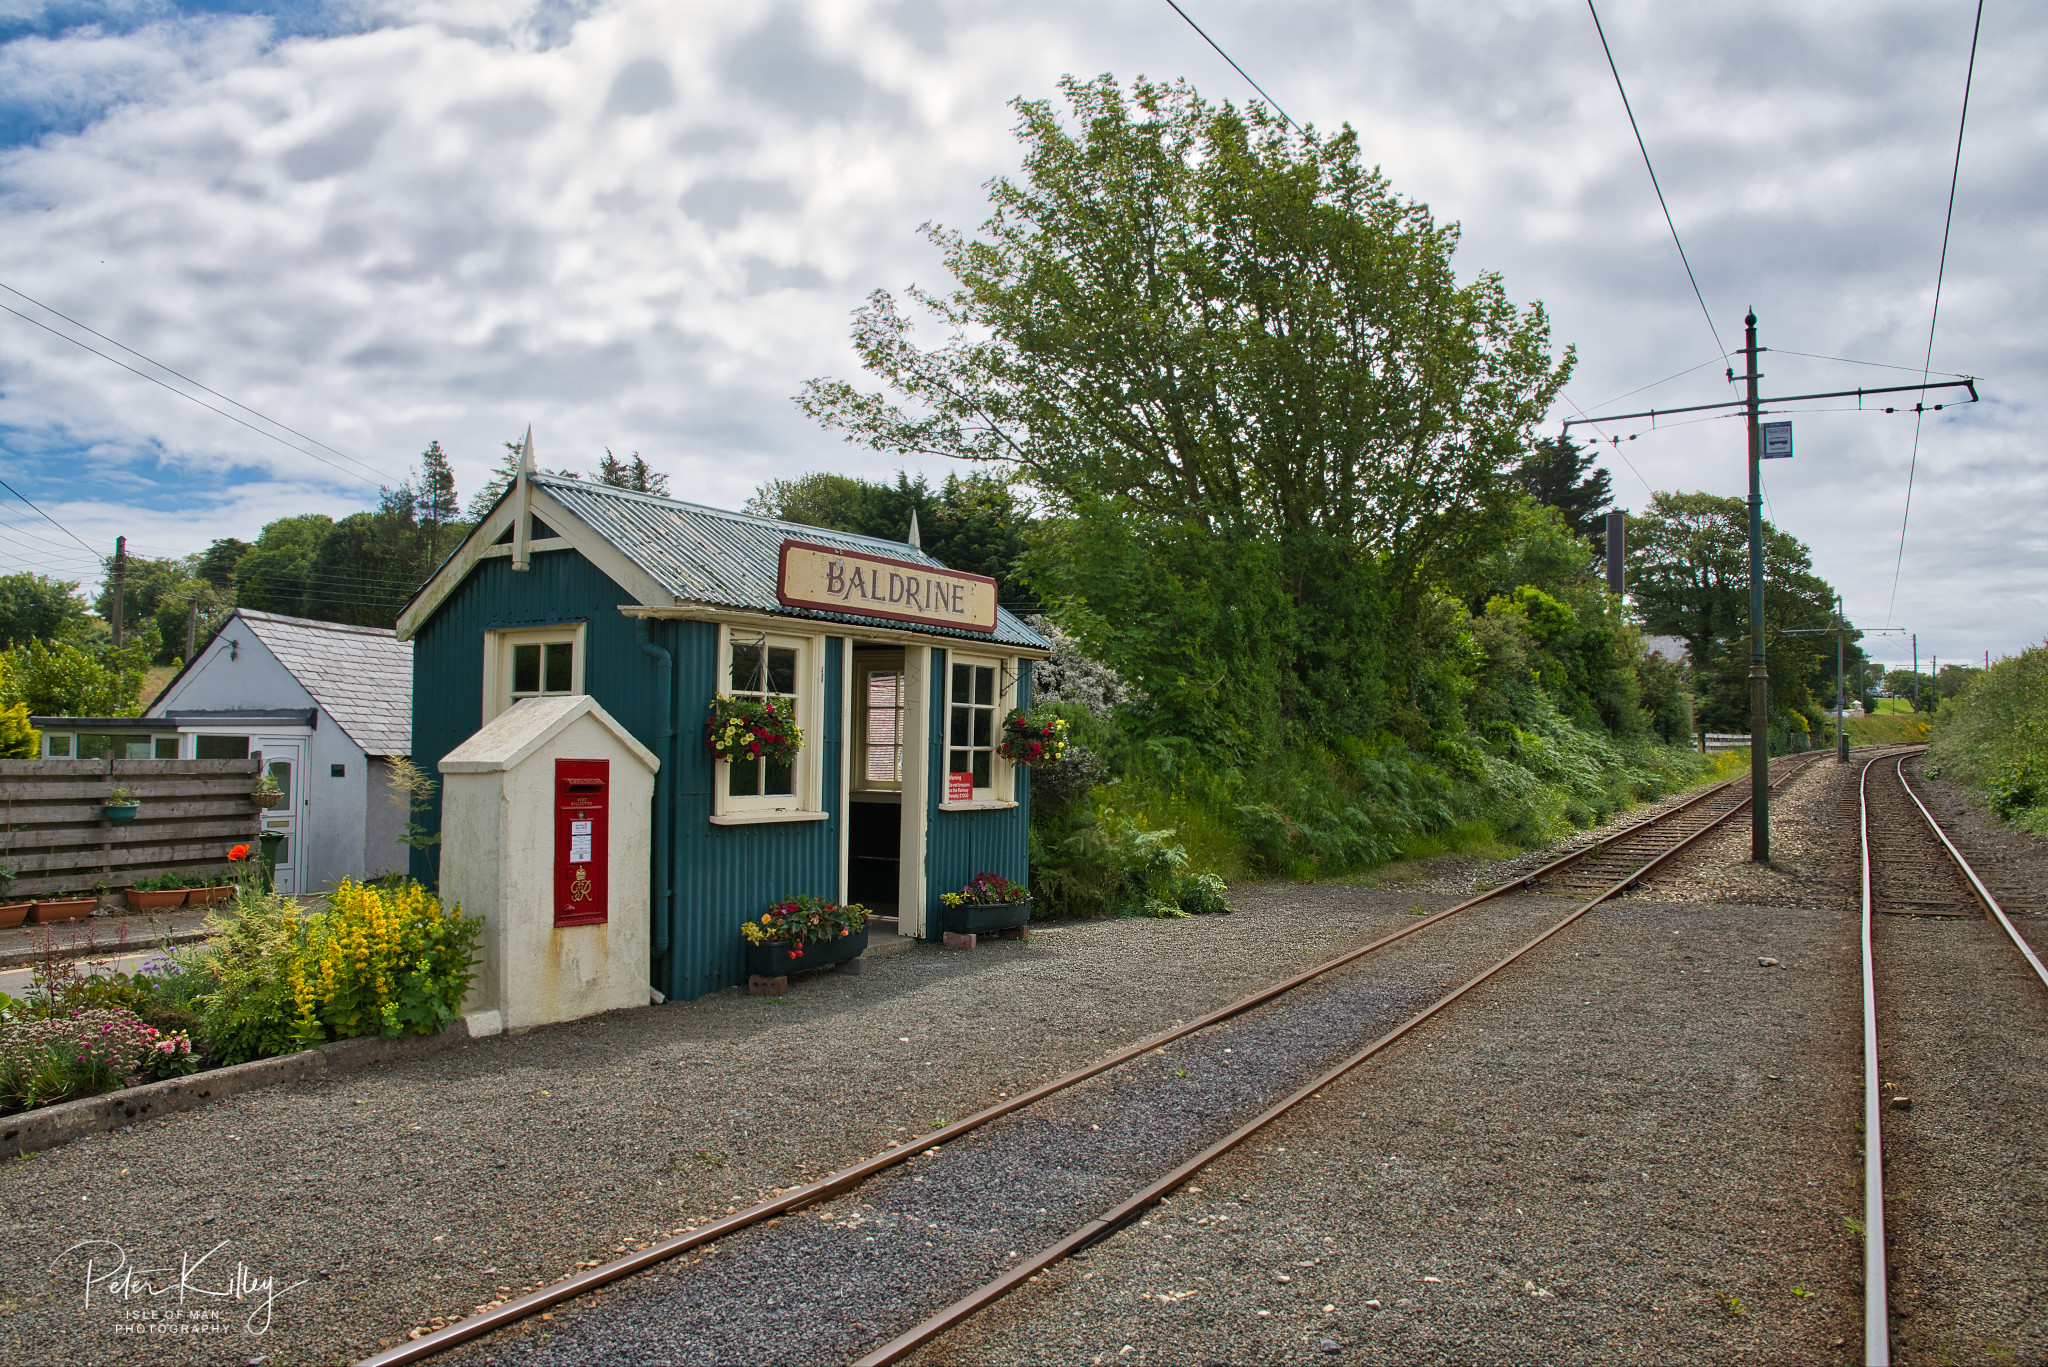 Baldrine Halt - © Peter Killey - www.manxscenes.com